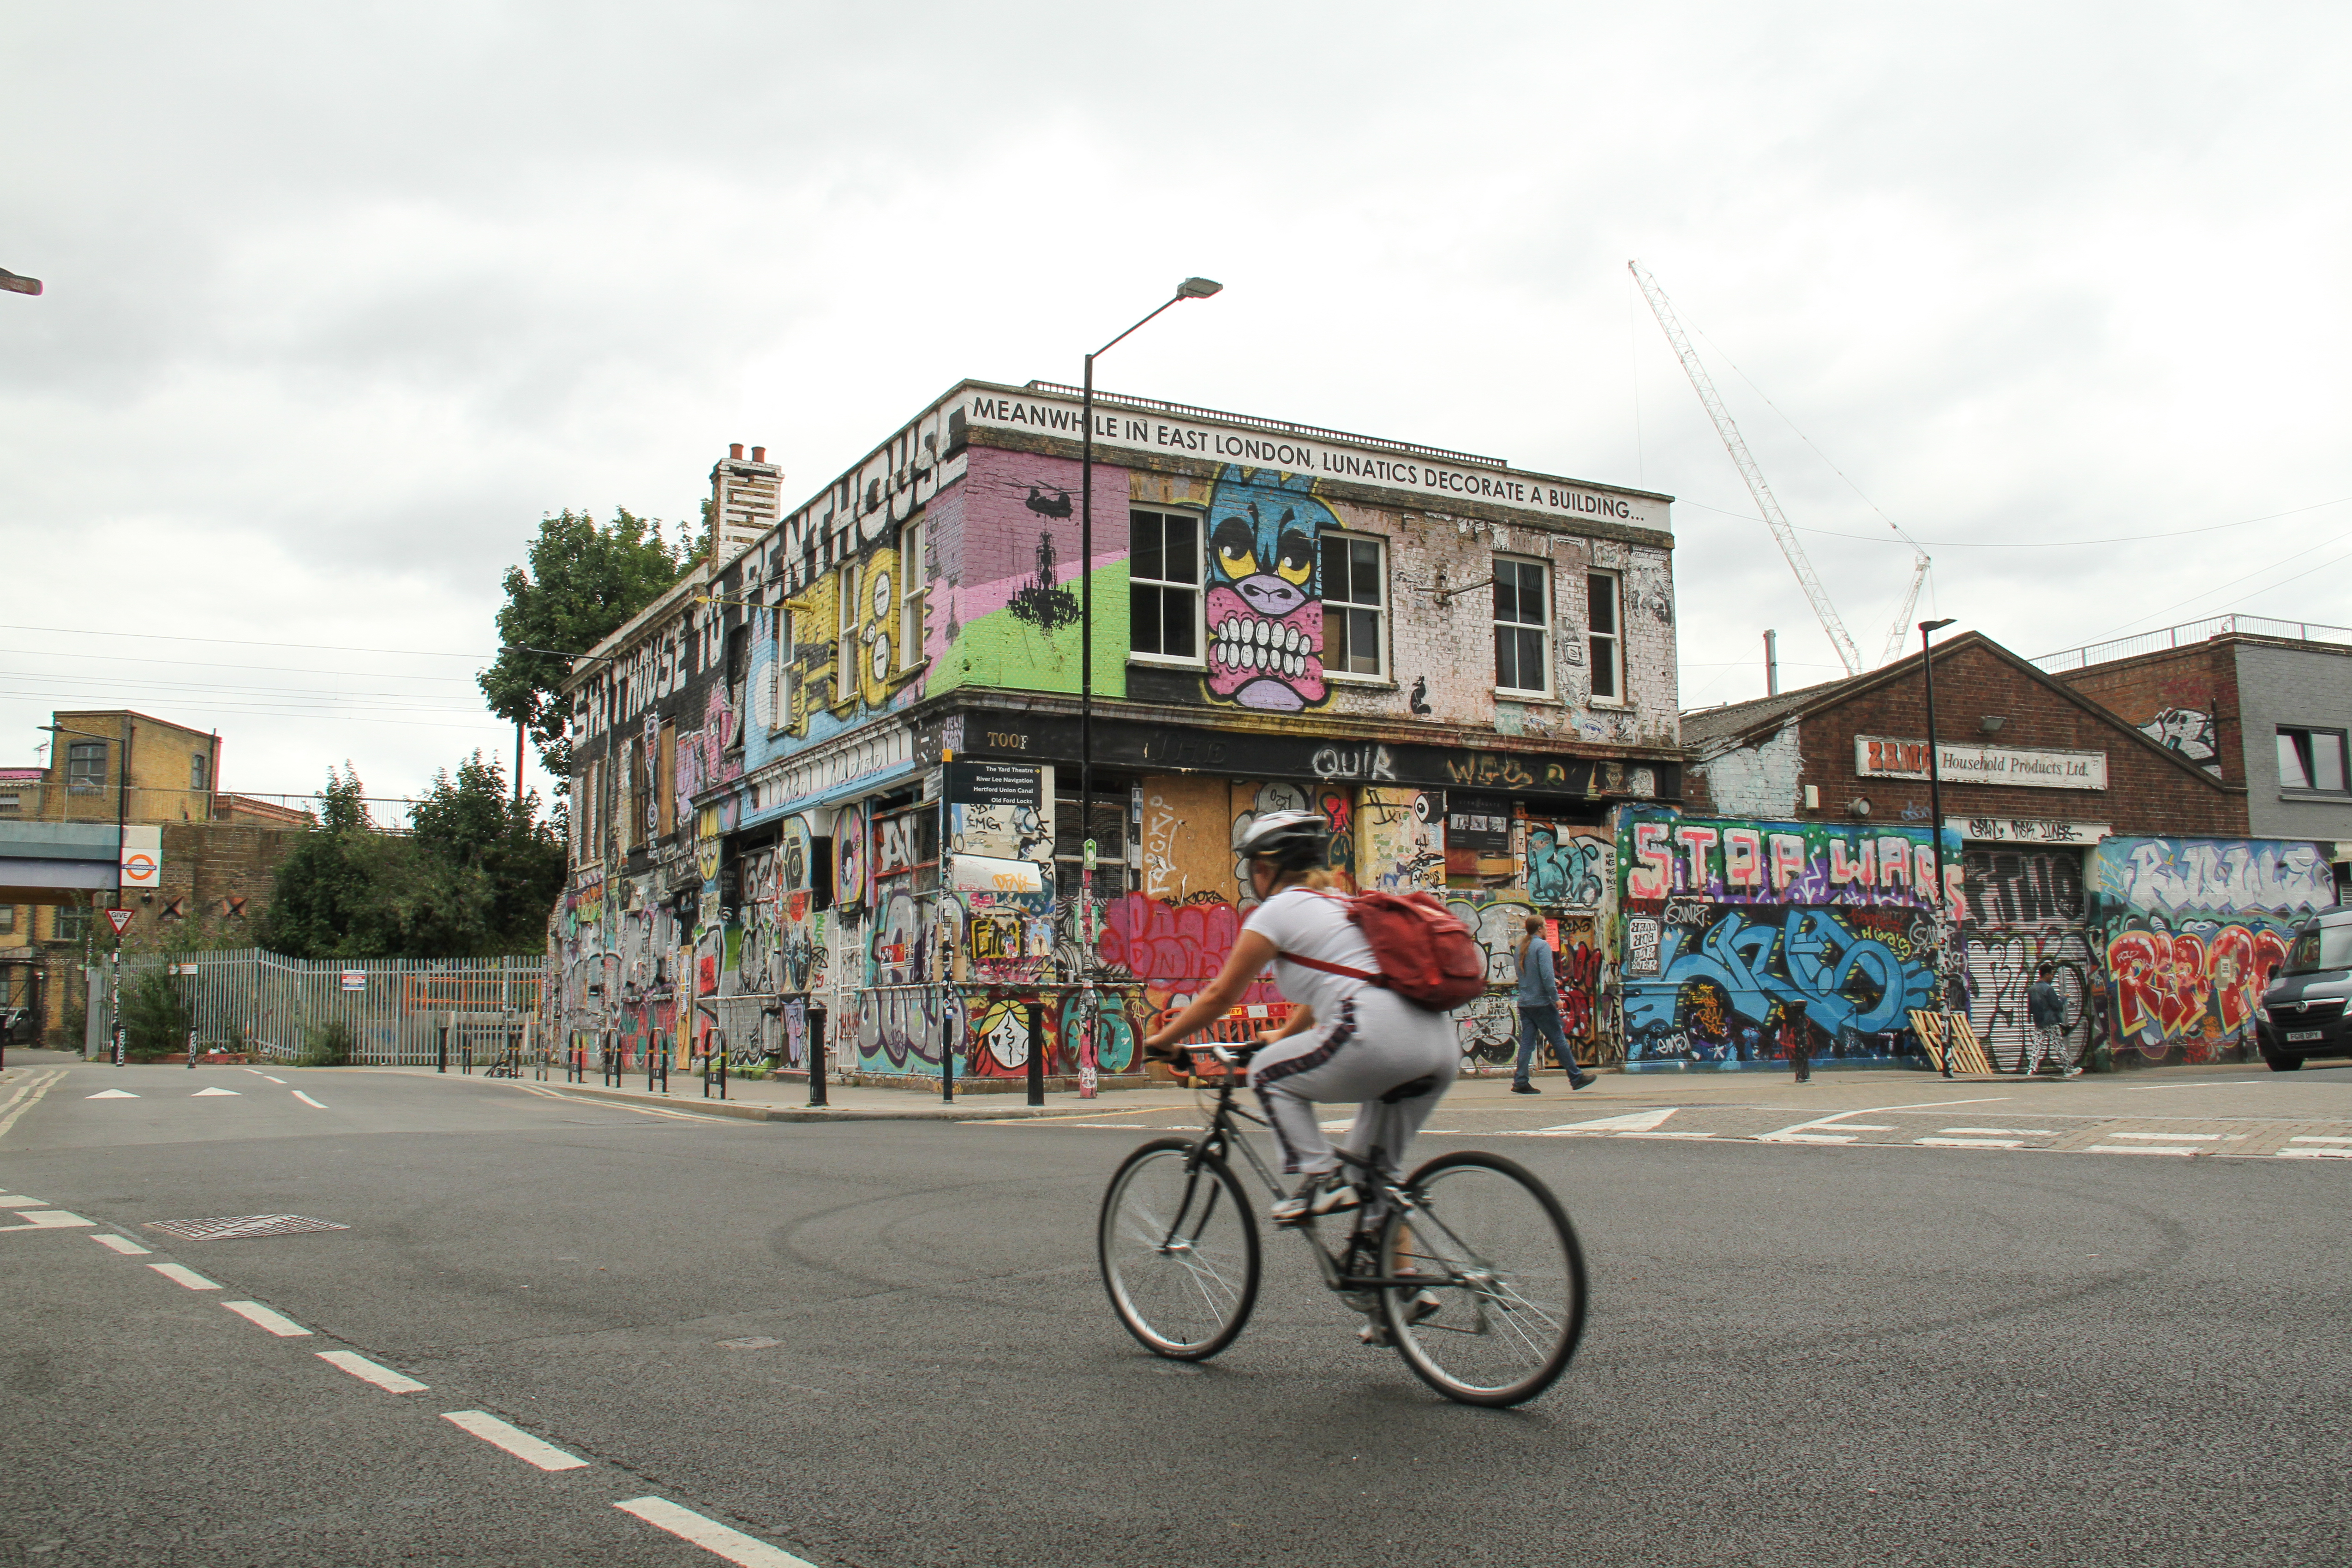 A cyclist ride past a derelict building on Hepscott Rd, Hackney Wick. Despite the reopening of �non-essential� shops, parks and some leisure facilities, numbers of shoppers were still lower than usual as the public opt to purchase online and work from home. (Photo by David Mbiyu / SOPA Images/Sipa USA)